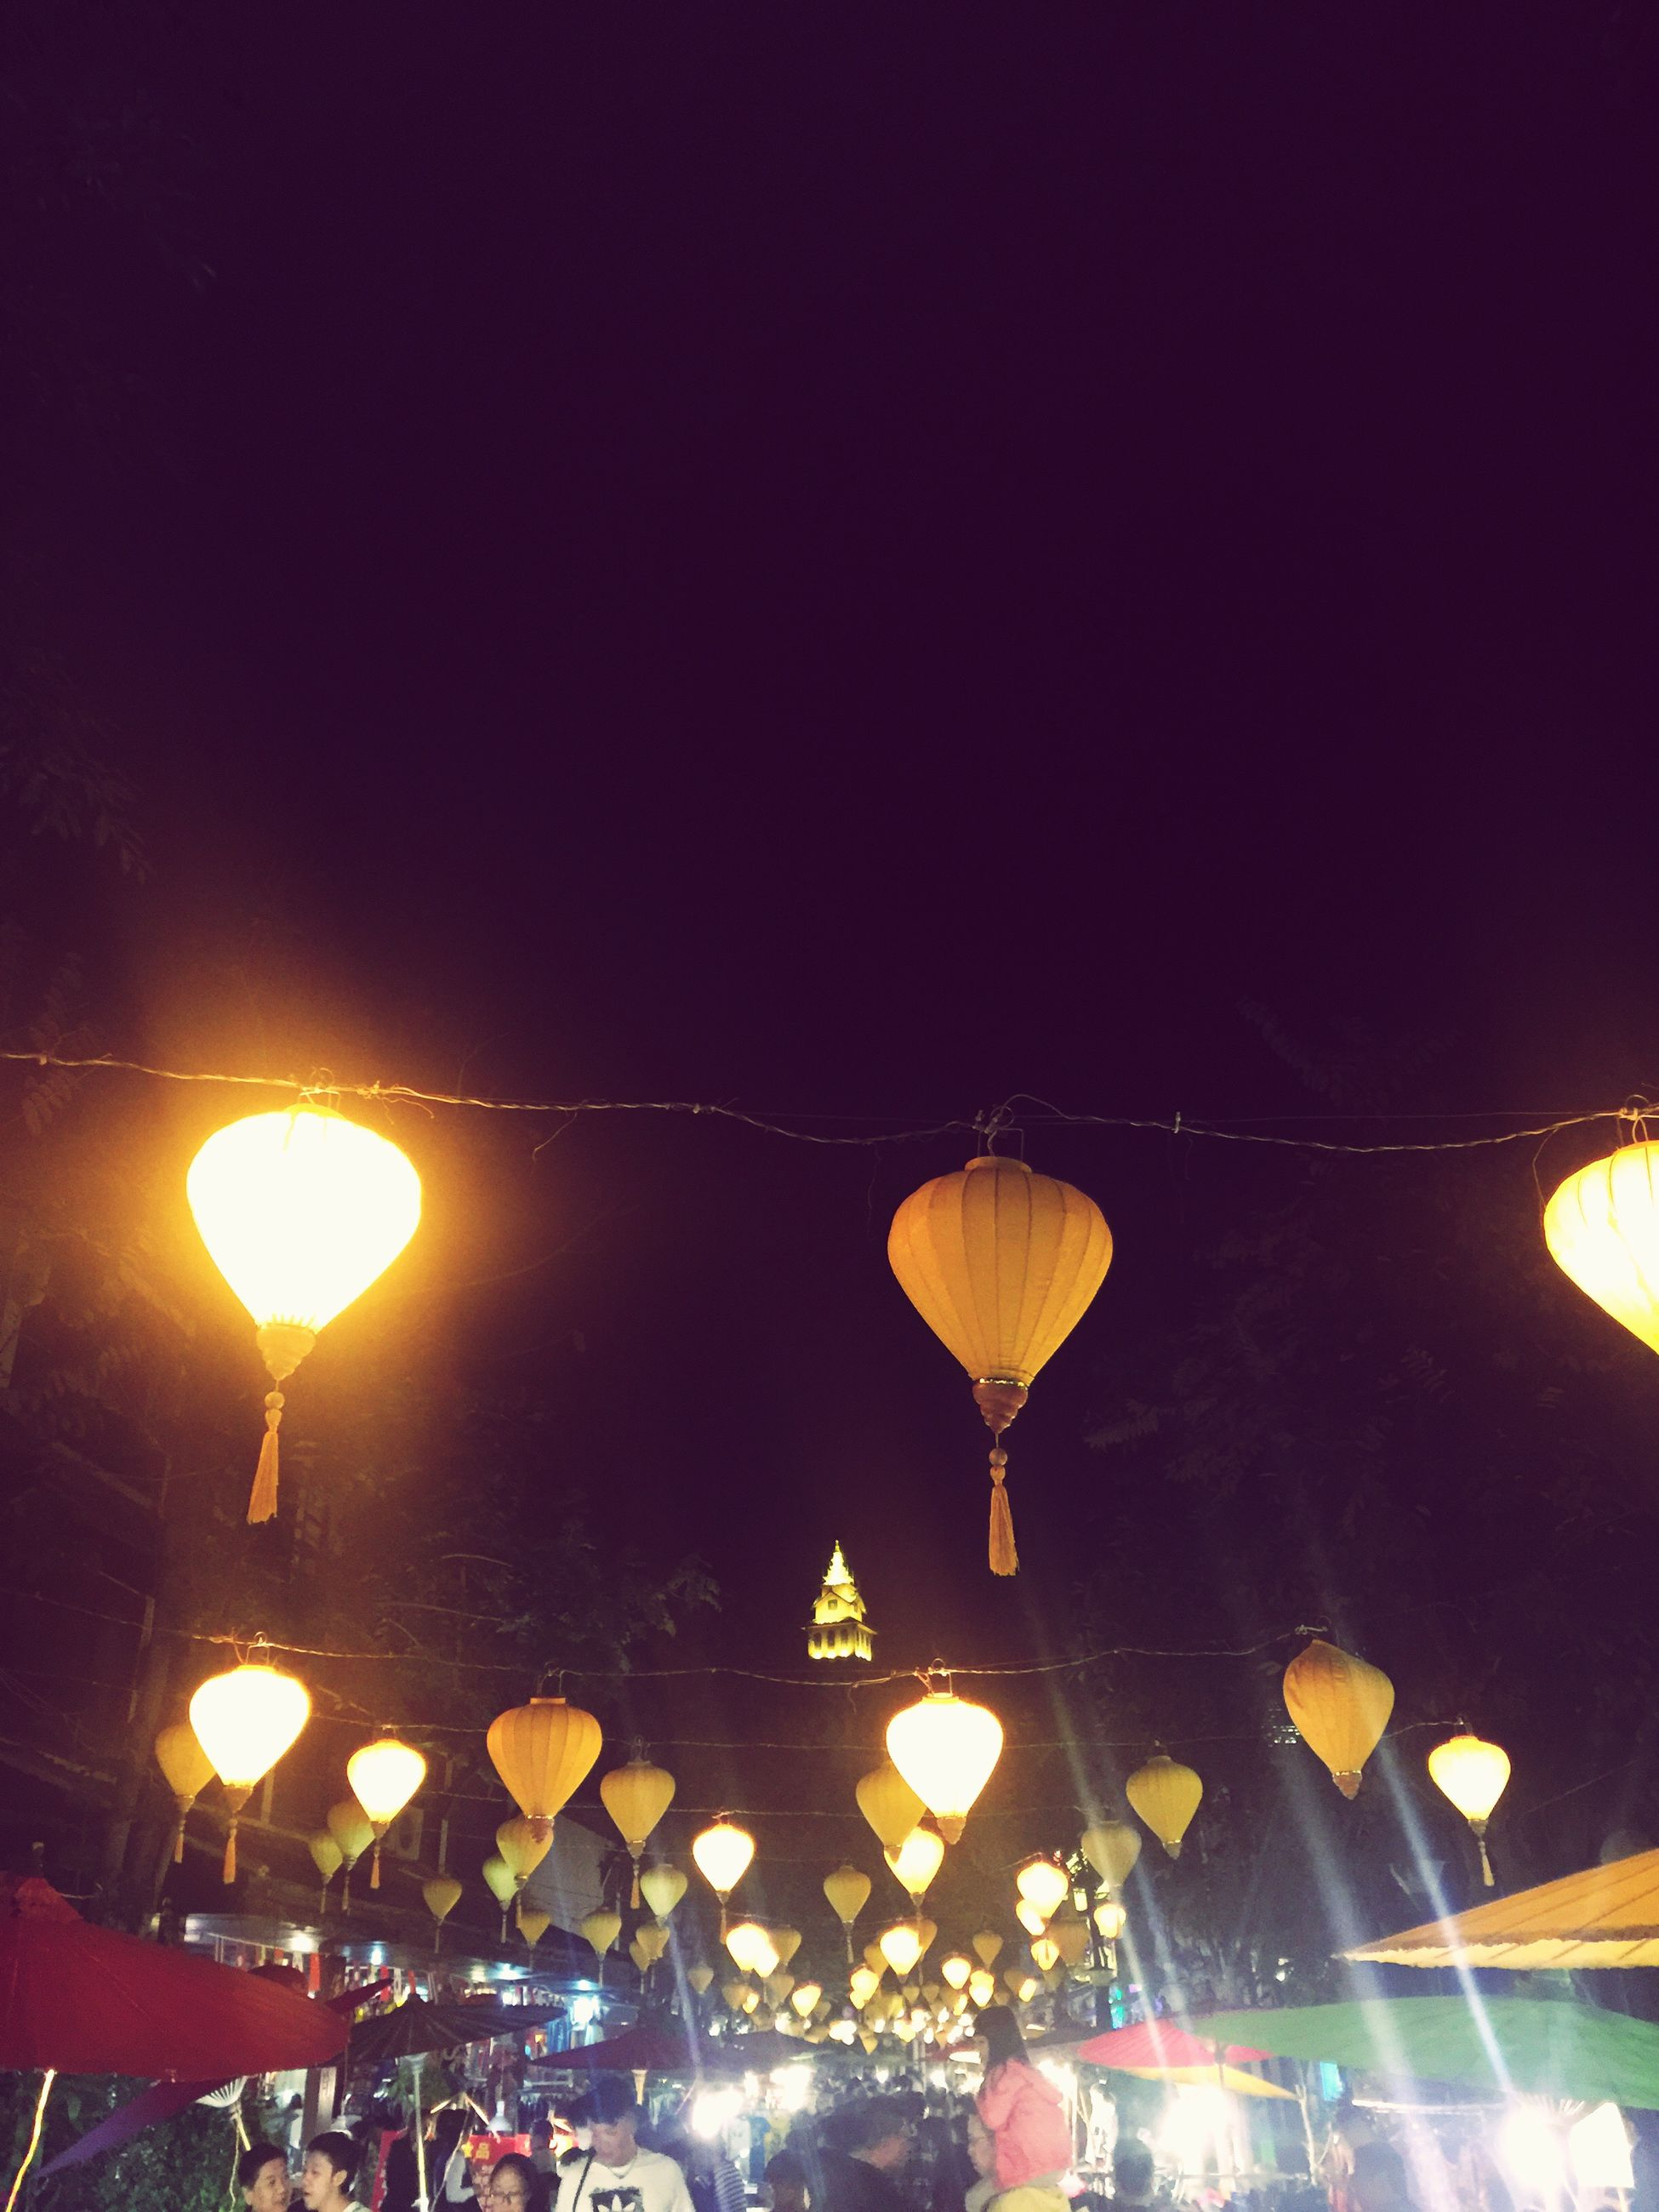 illuminated, lighting equipment, low angle view, hanging, electricity, traditional festival, no people, night, hot air balloon, outdoors